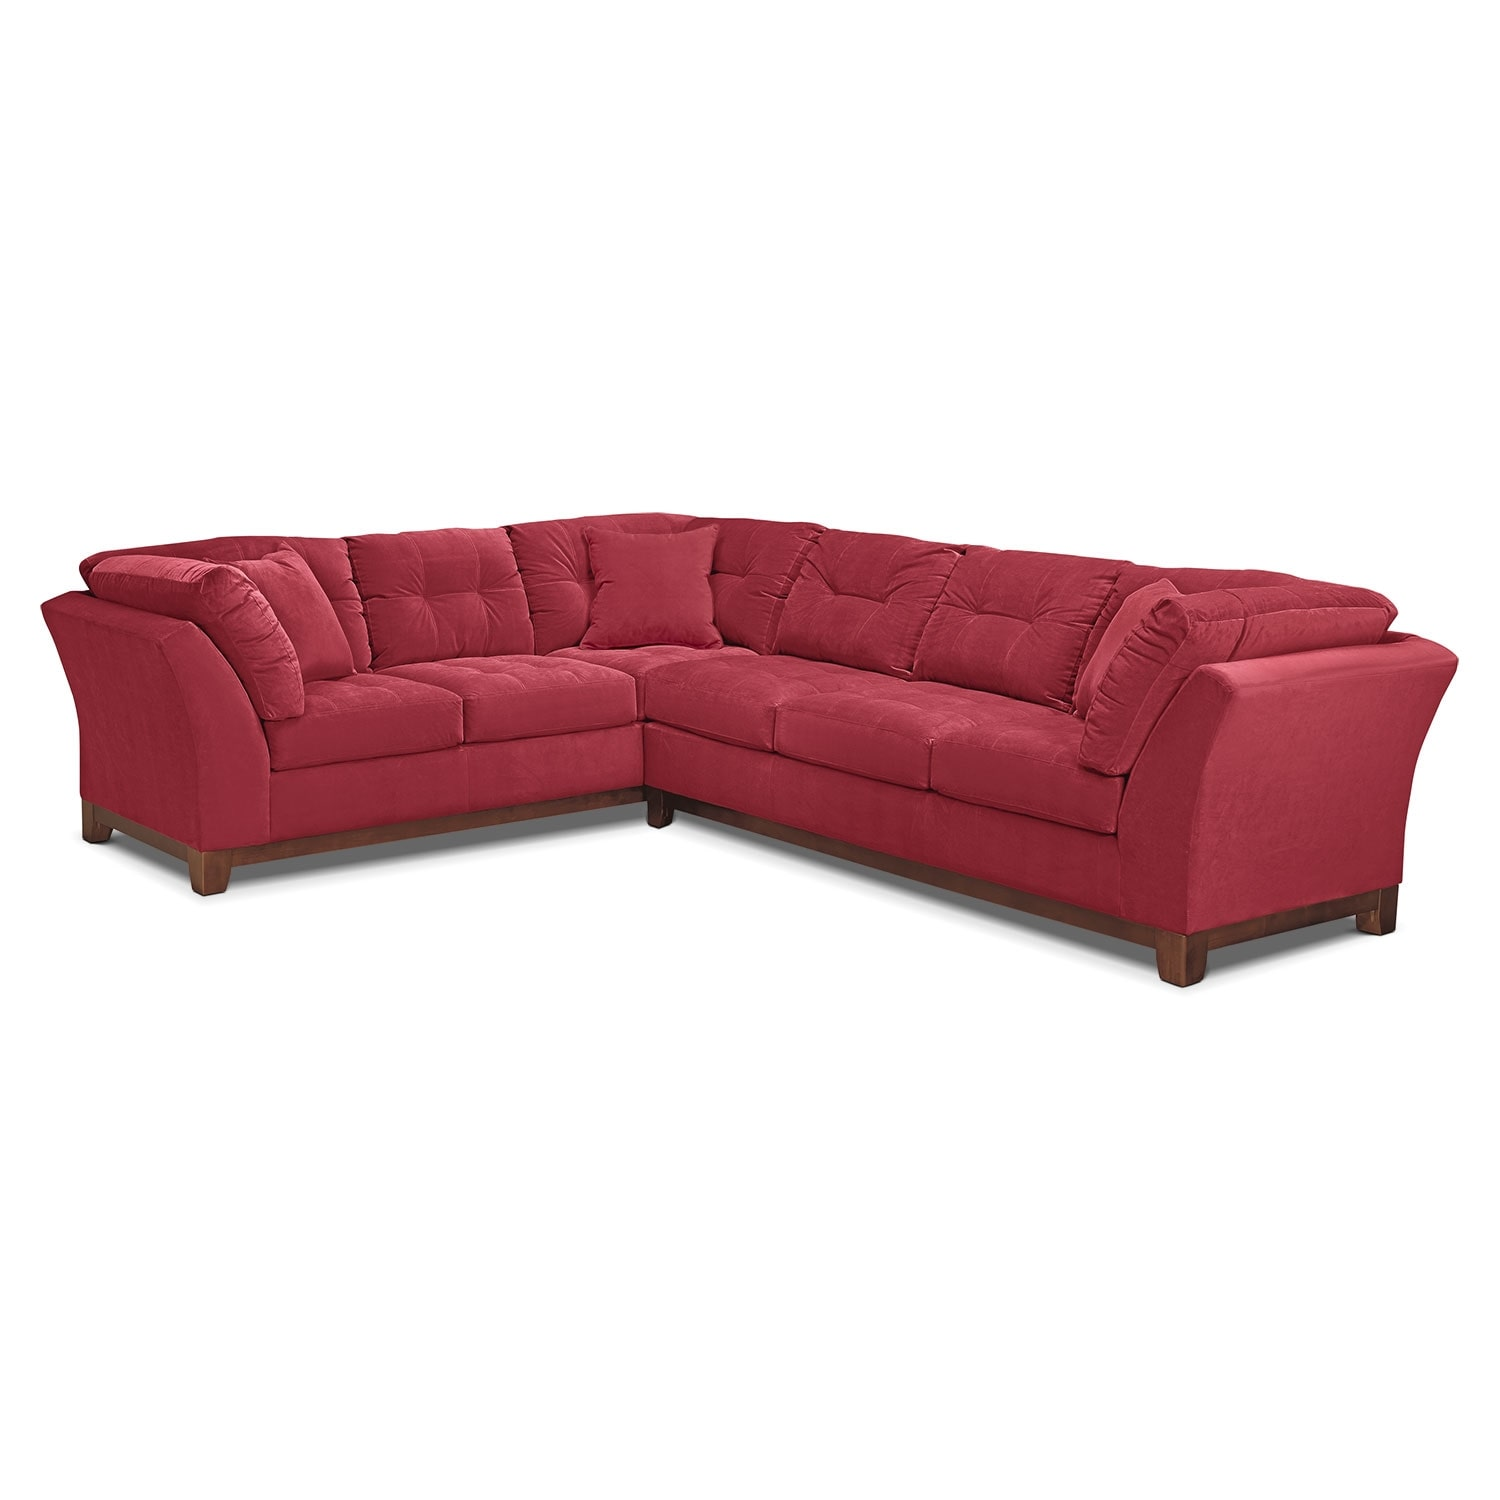 Sebring 2-Piece Sectional with Right-Facing Sofa - Poppy